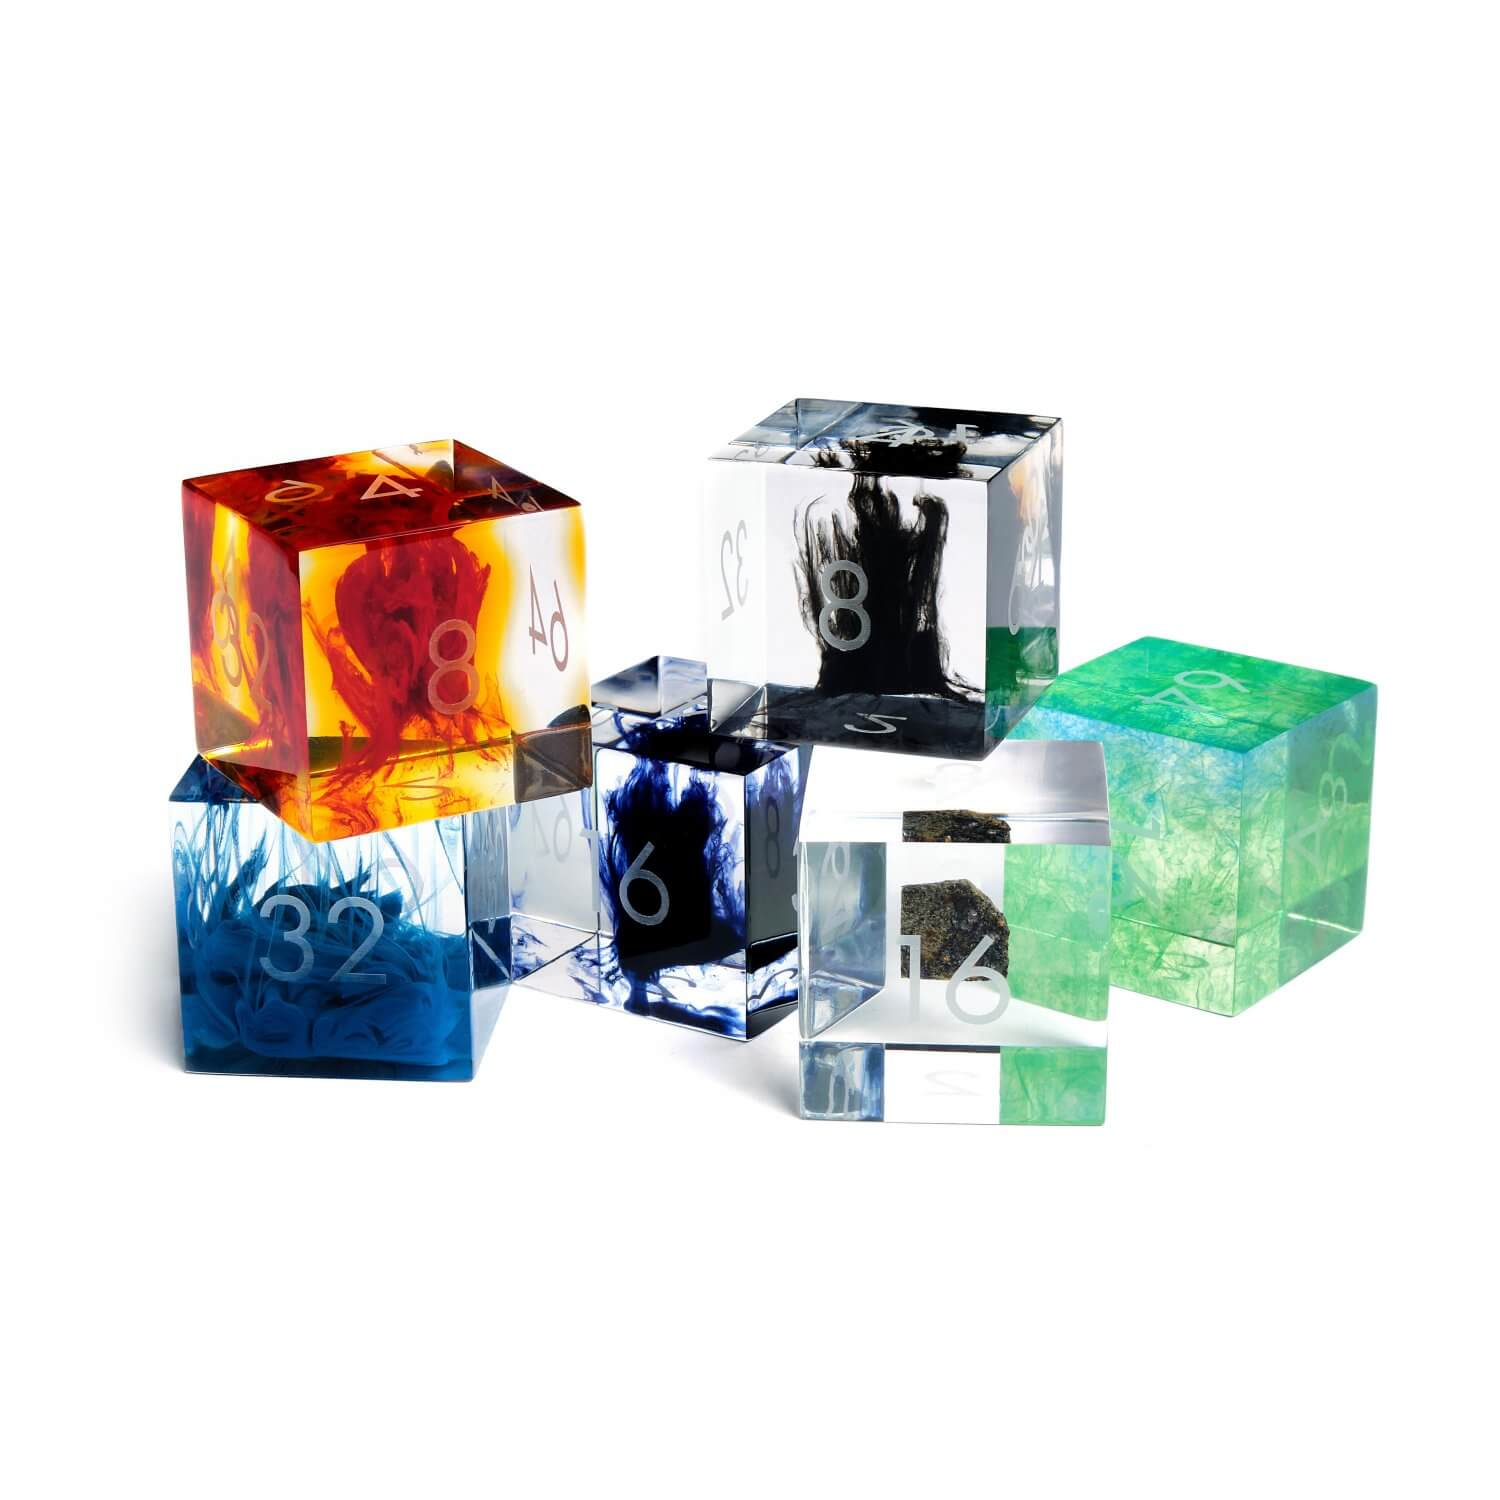 6 resin doubling cubes in different colours